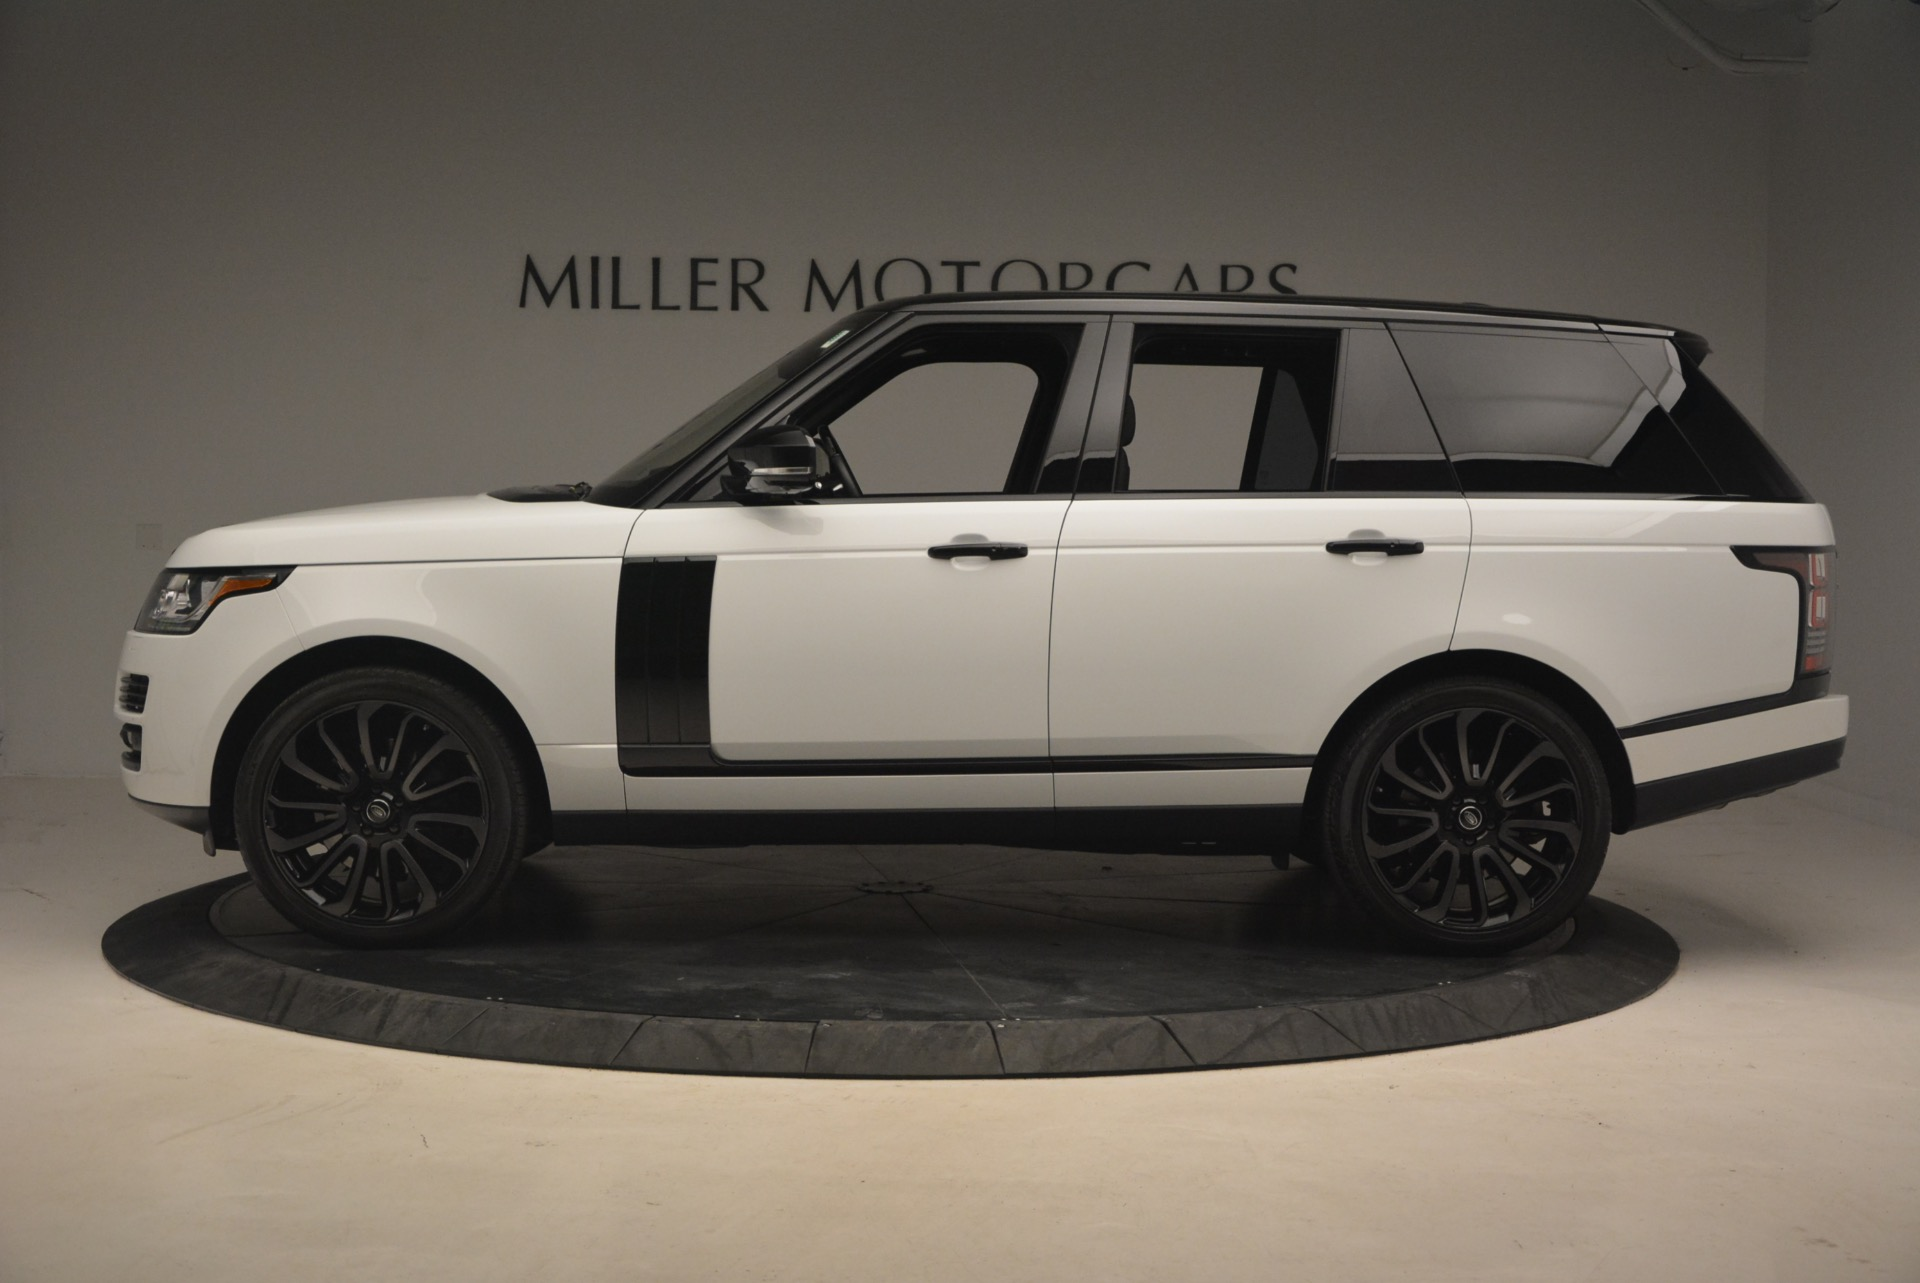 Used 2015 Land Rover Range Rover Supercharged For Sale In Greenwich, CT 1292_p3